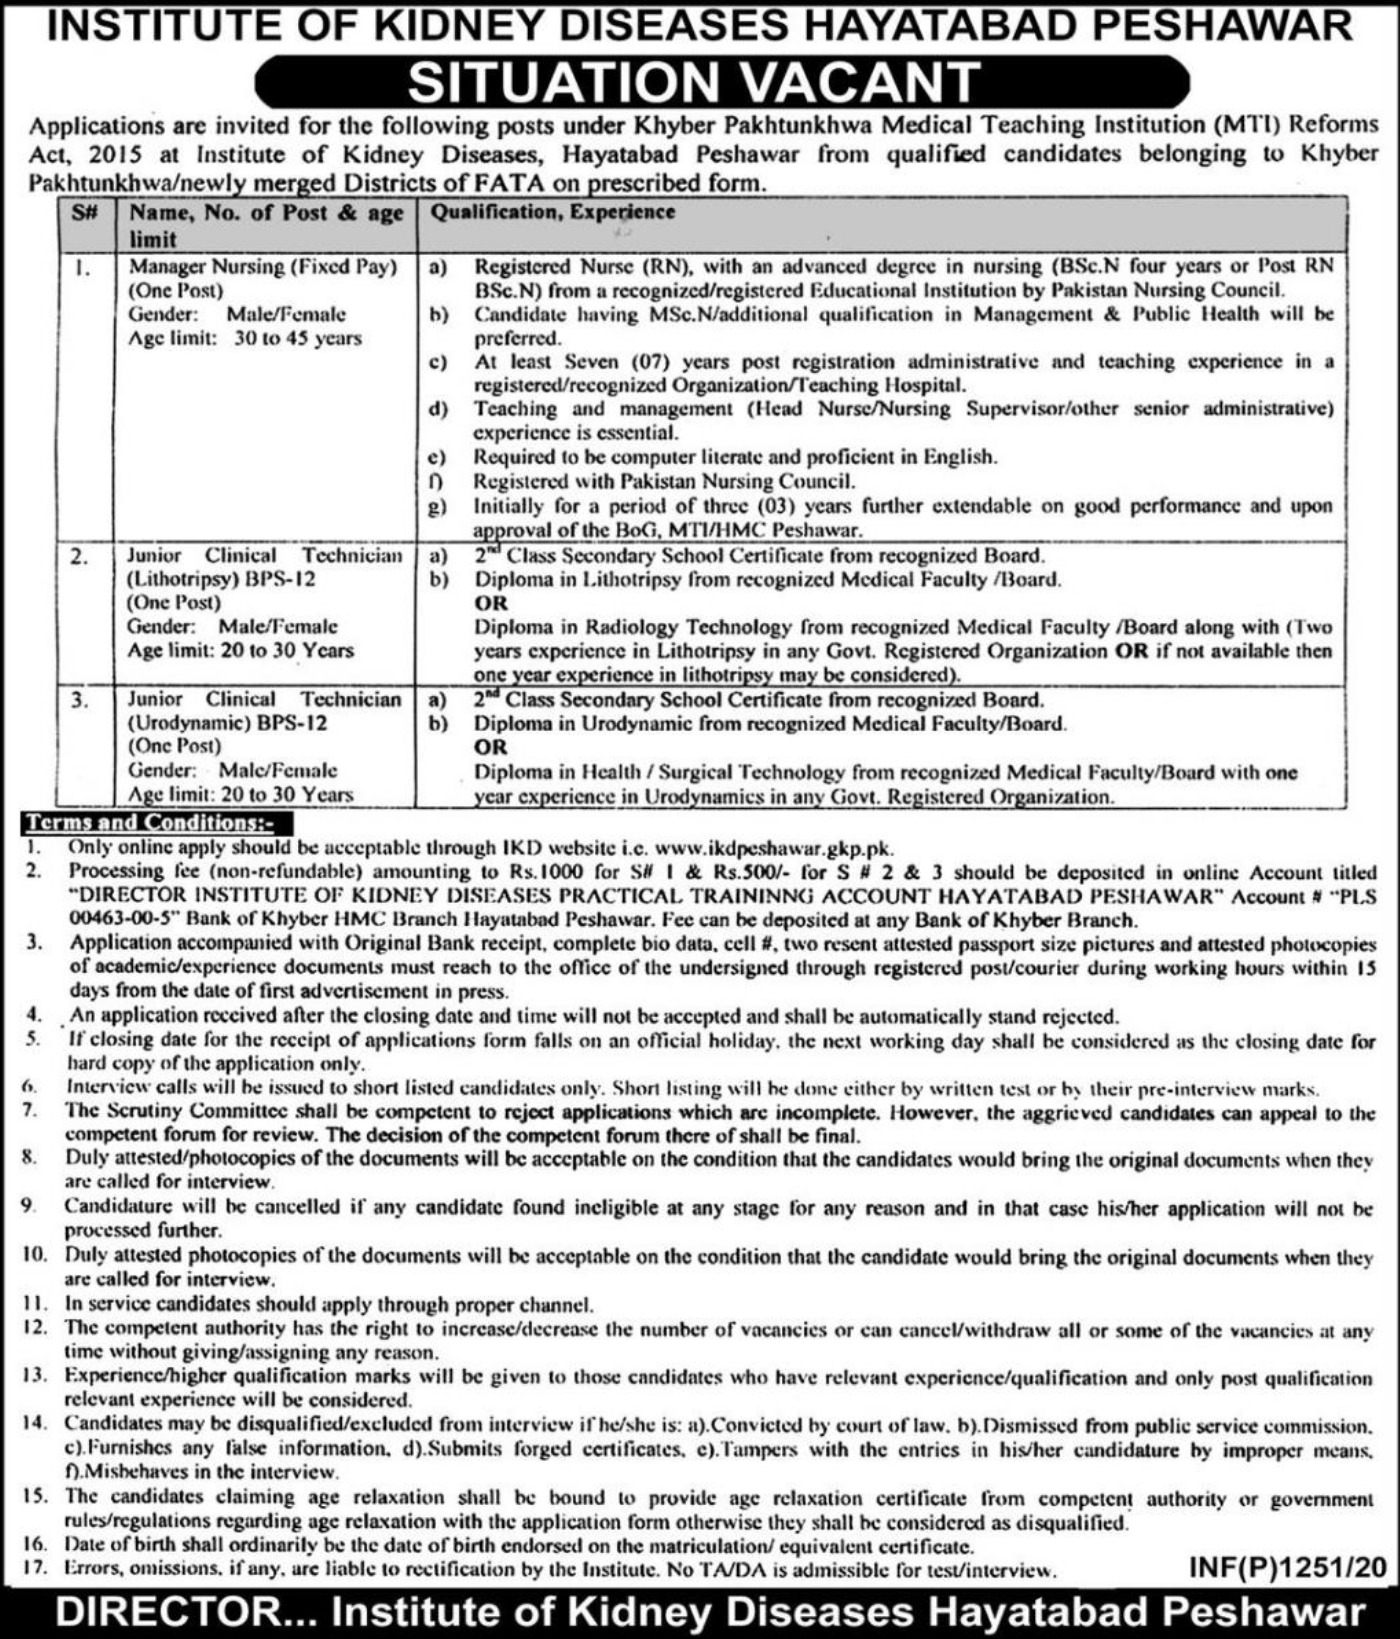 IKD Hayatabad Peshawar Jobs 2020 Institute of Kidney Diseases